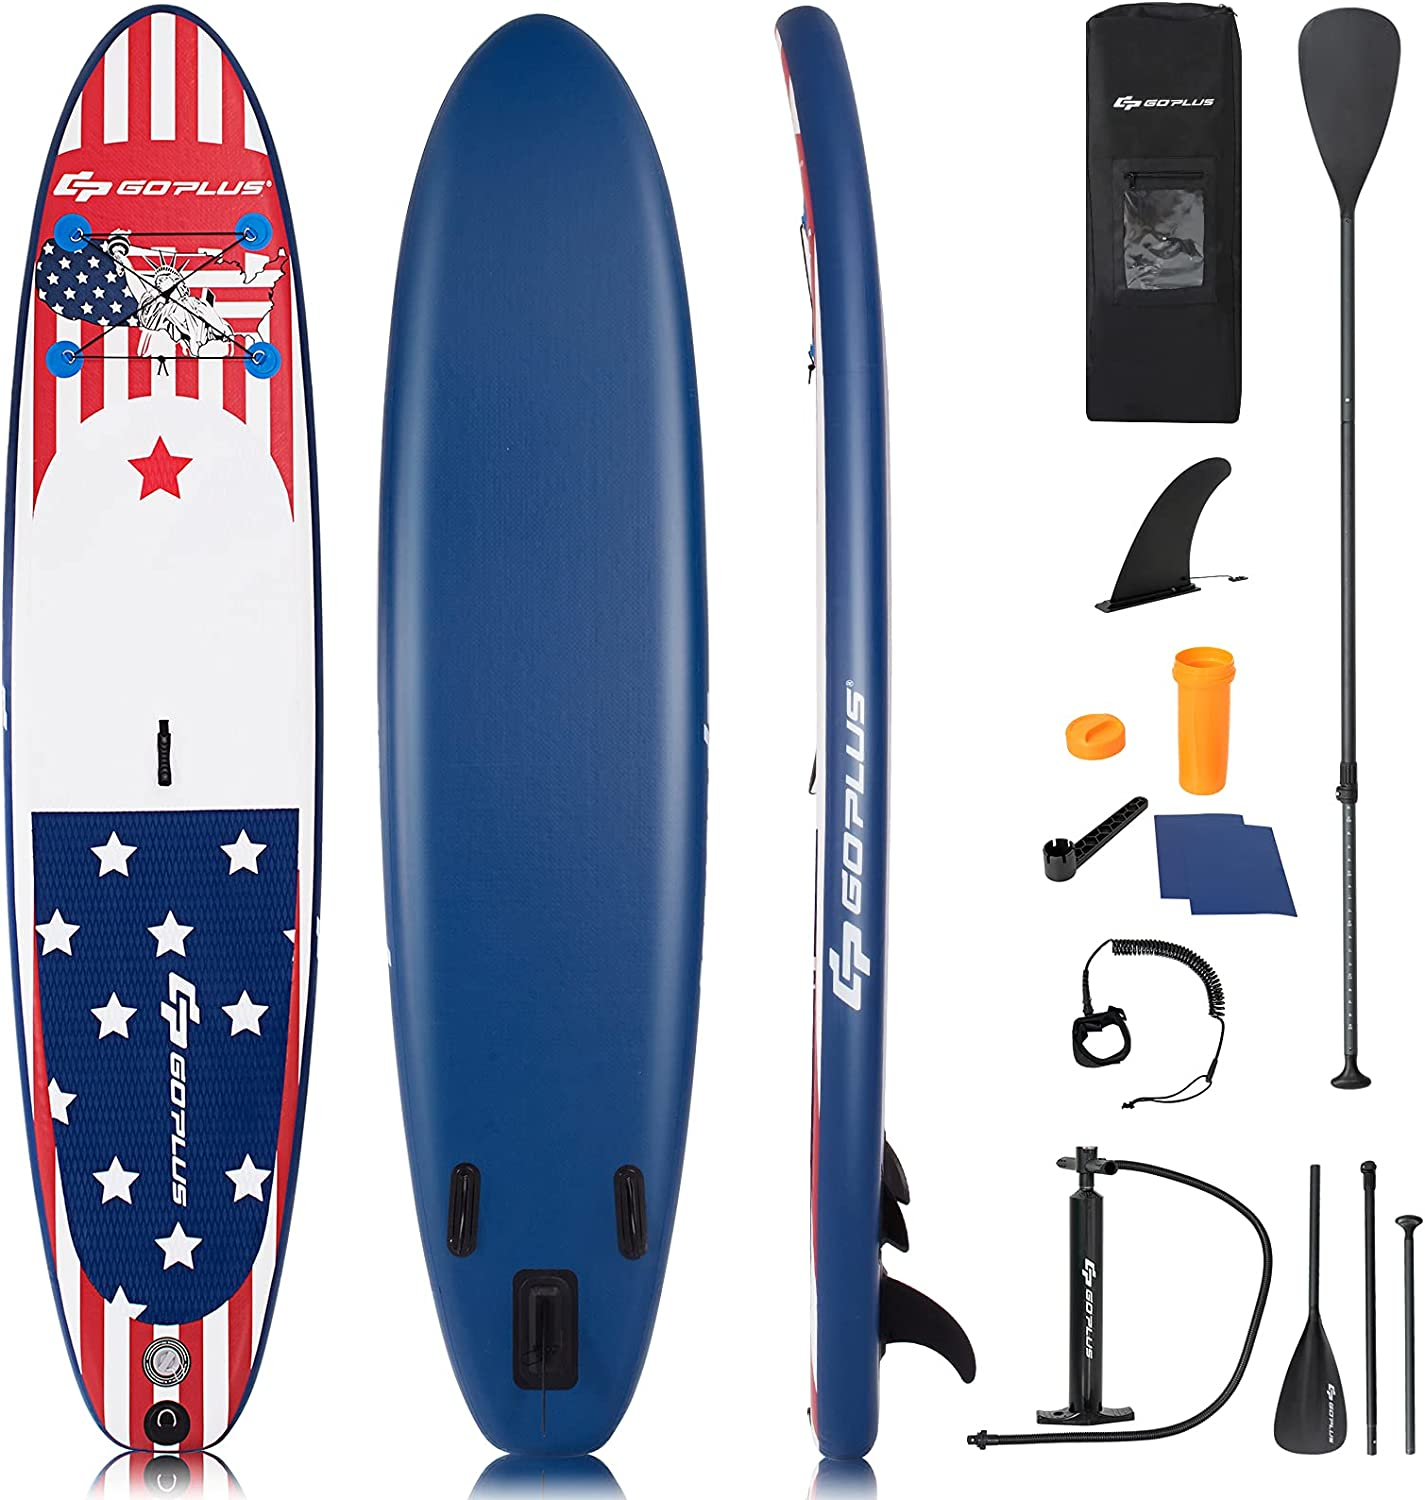 Goplus Inflatable Cheap bargain Stand up Paddle Board Brand new Process Latest Inkjet An